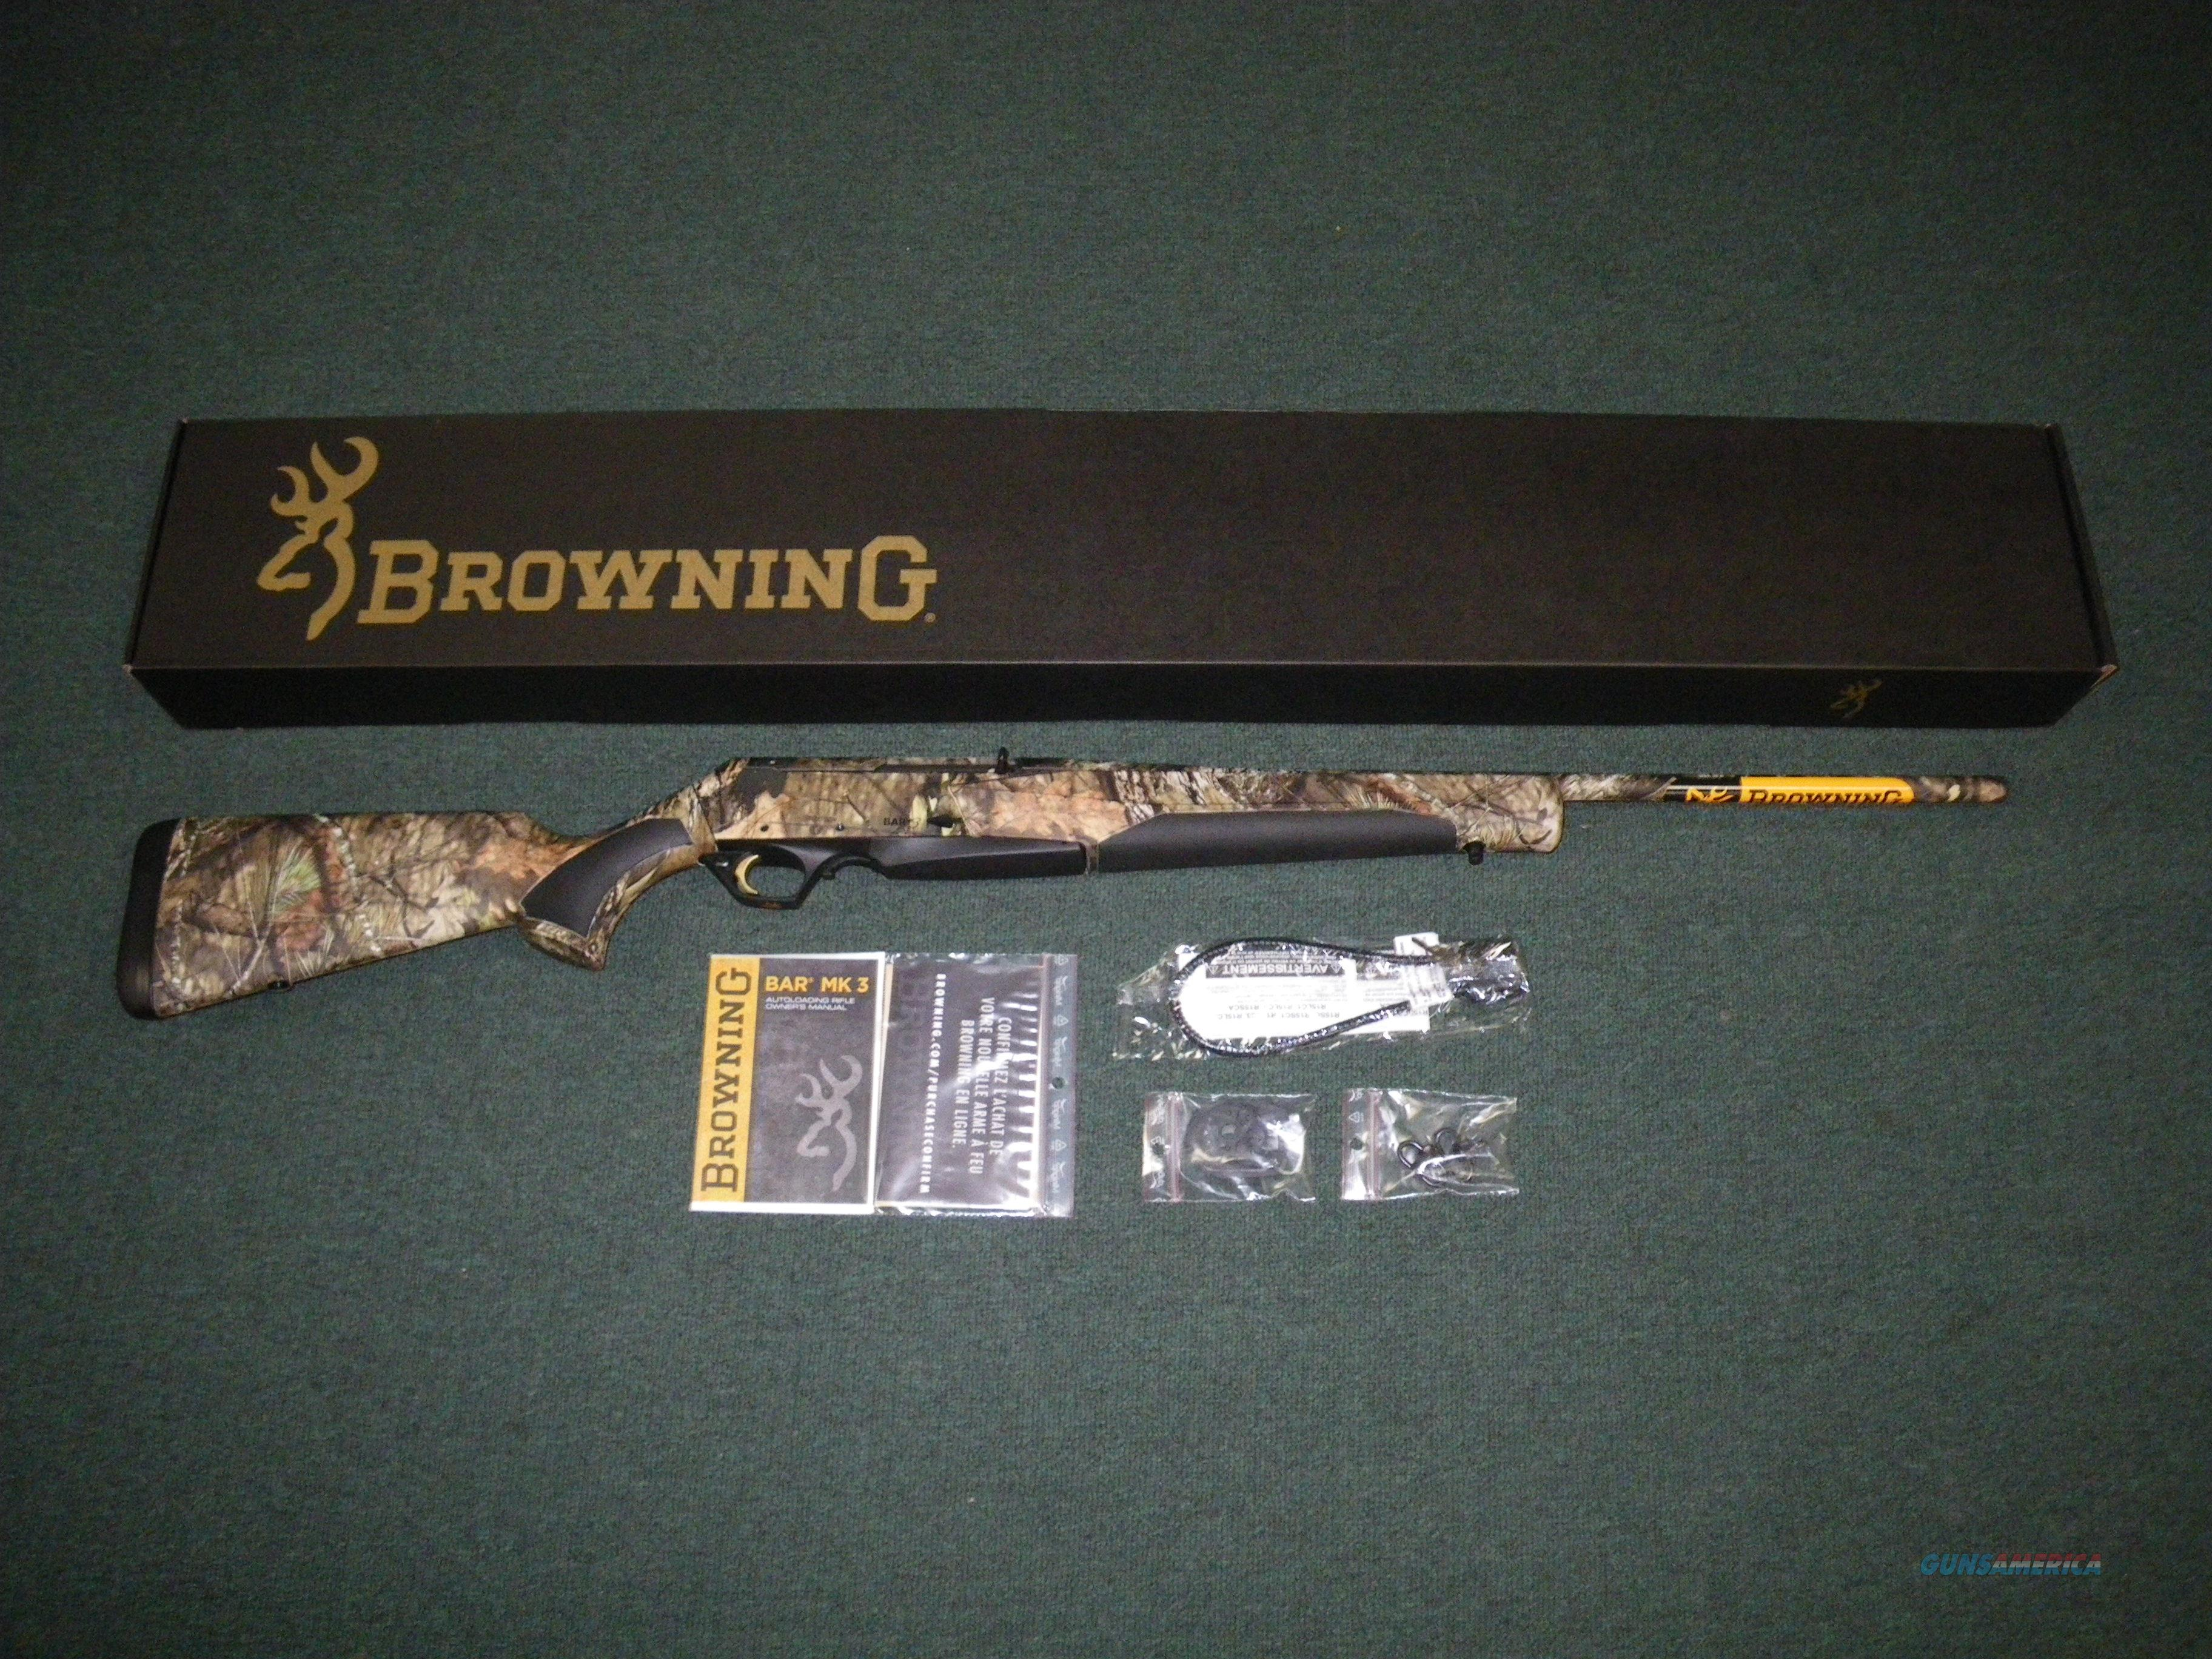 "Browning BAR MK3 MOBU Country 308 Winchester 22"" NEW 031049218Browning BAR MK3 MOBU Country 308 Winchester 22"" NEW 031049218  Guns > Rifles > Browning Rifles > Semi Auto > Hunting"